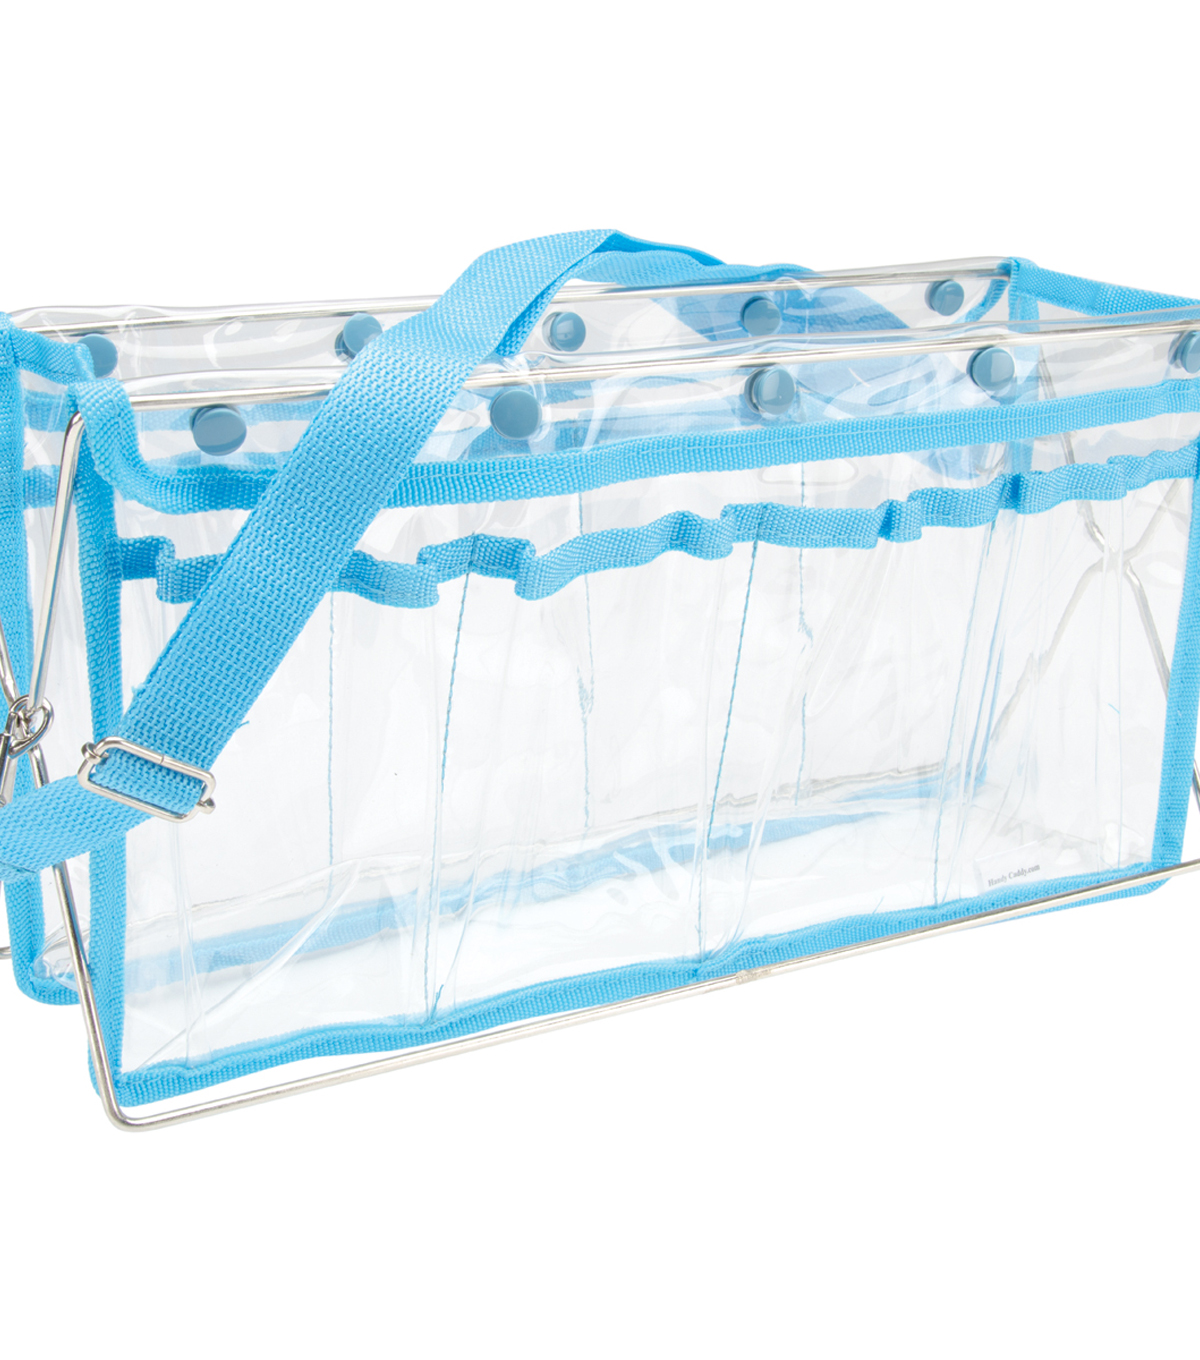 Handy Caddy Deluxe Table Top Caddy-Clear with Turquoise Trim